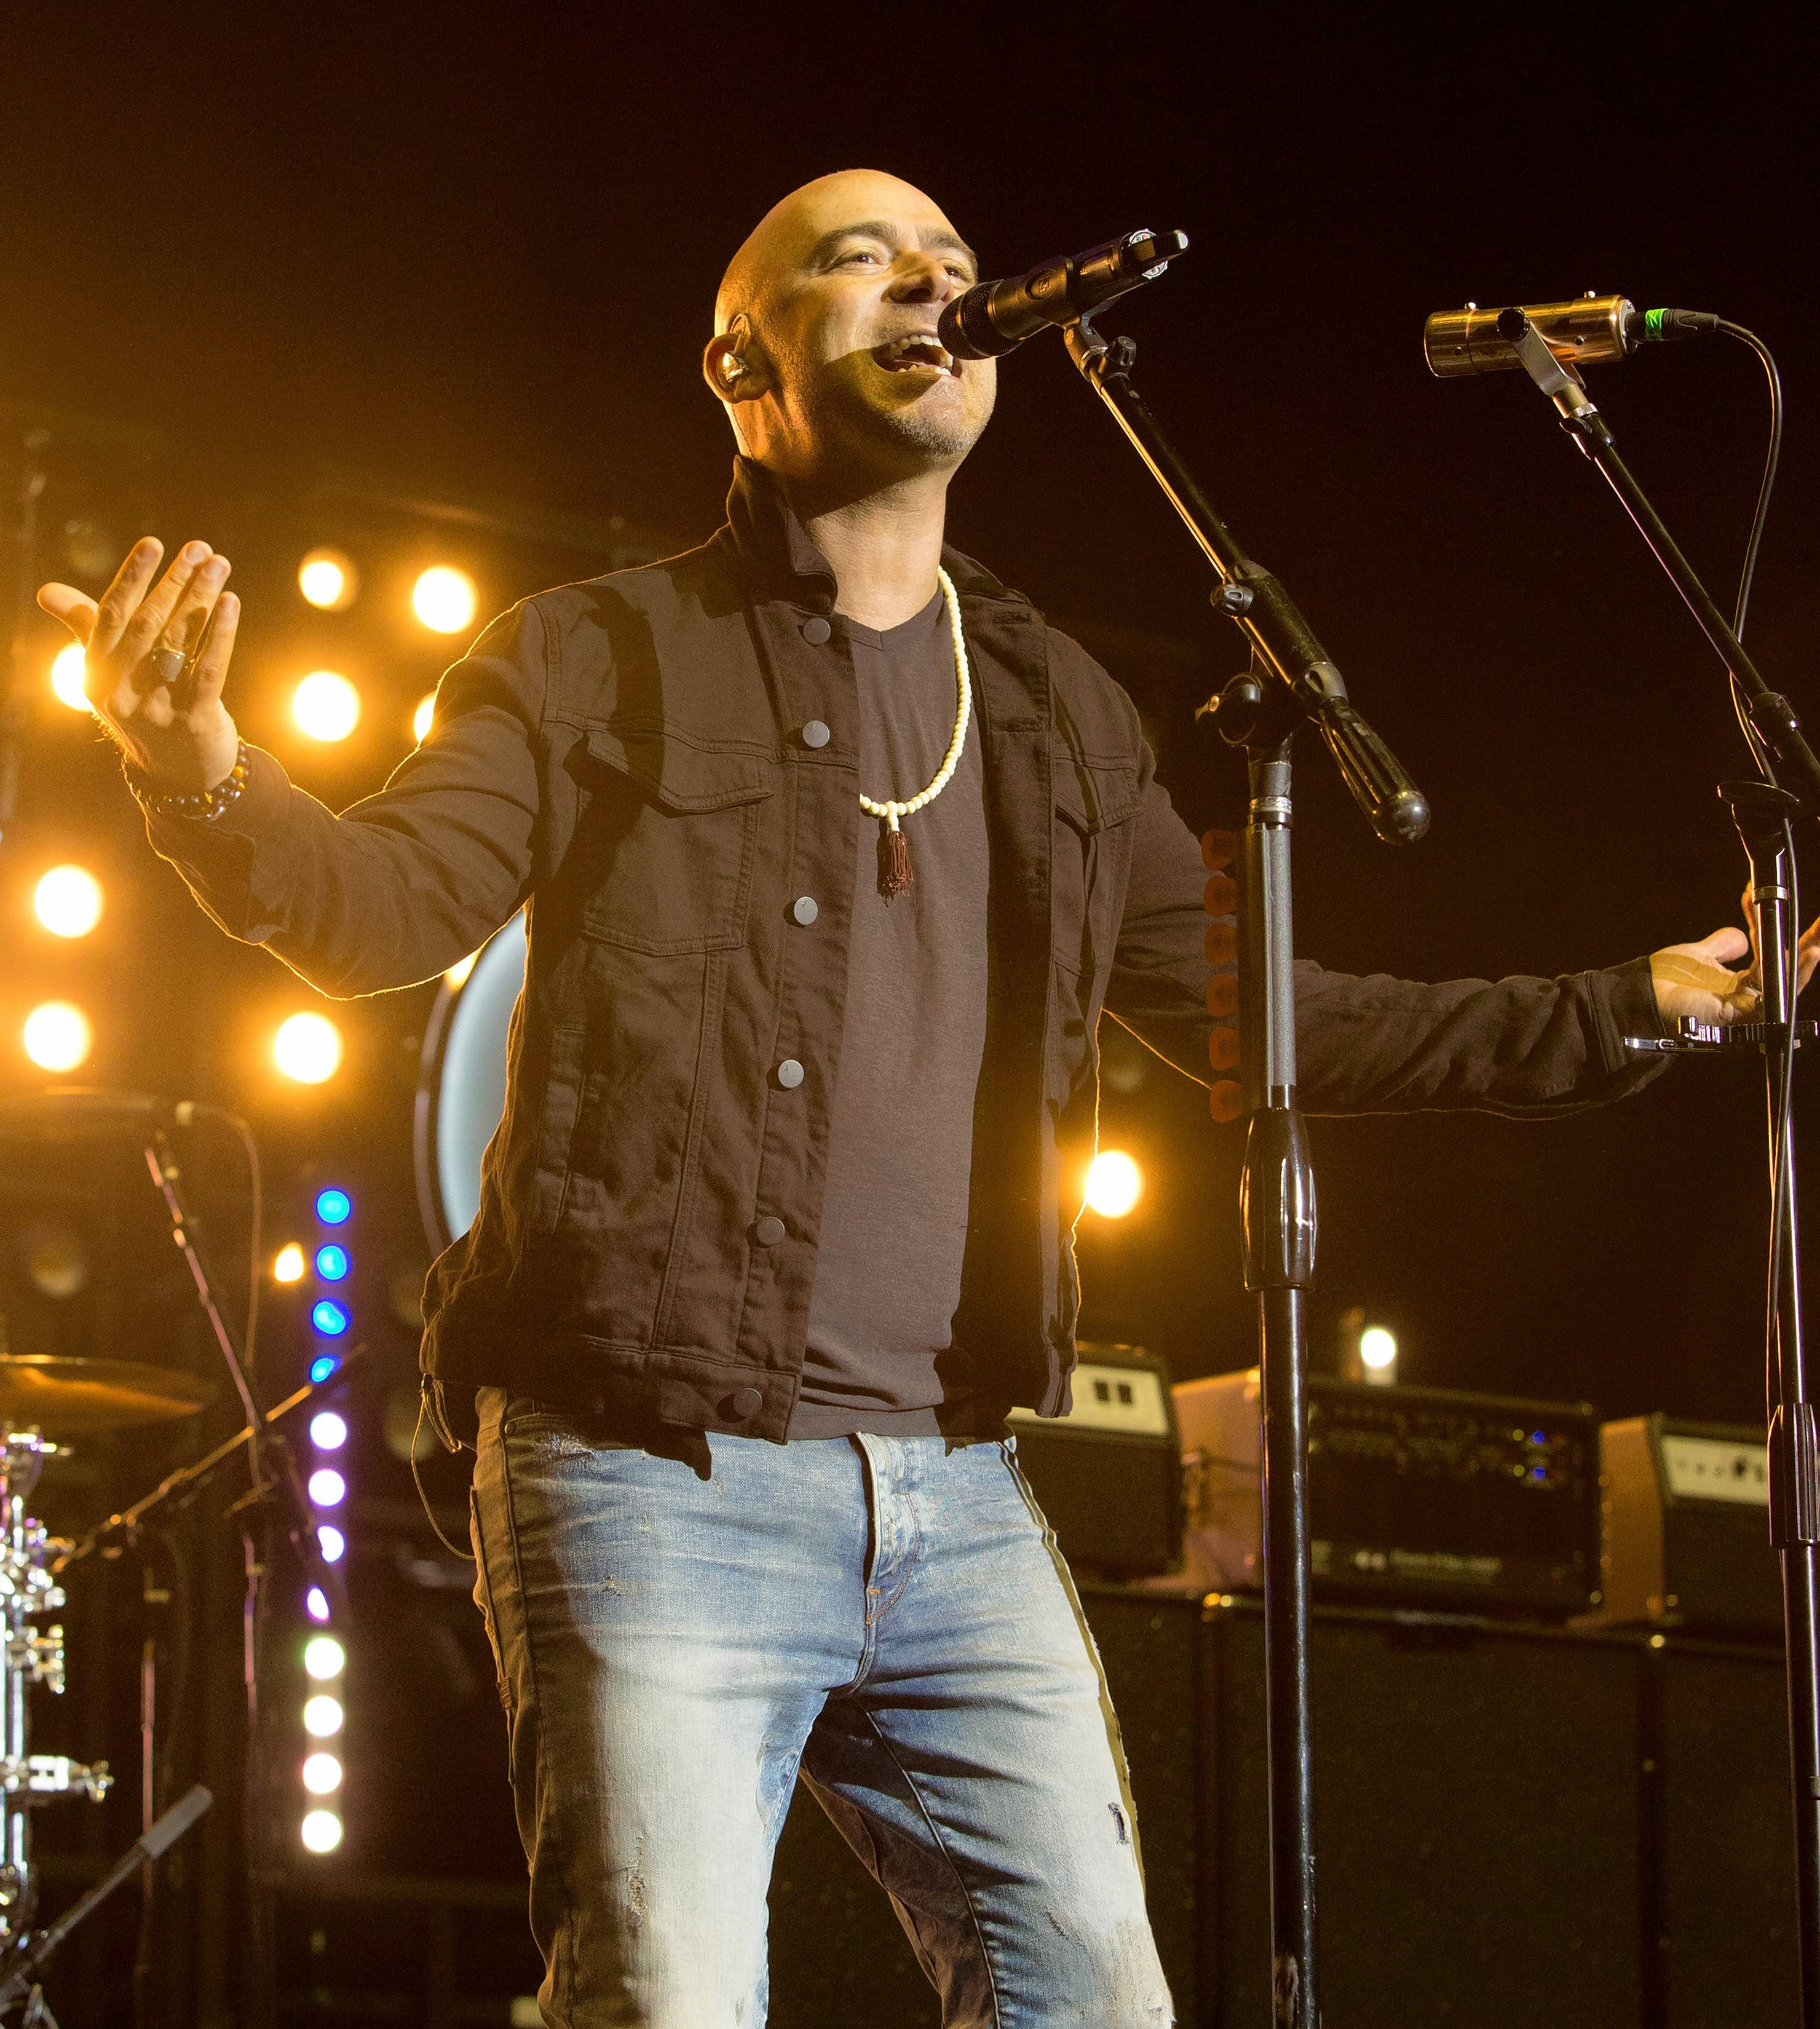 Ed Kowalczyk and the band Live will play Lollapalooza this weekend.